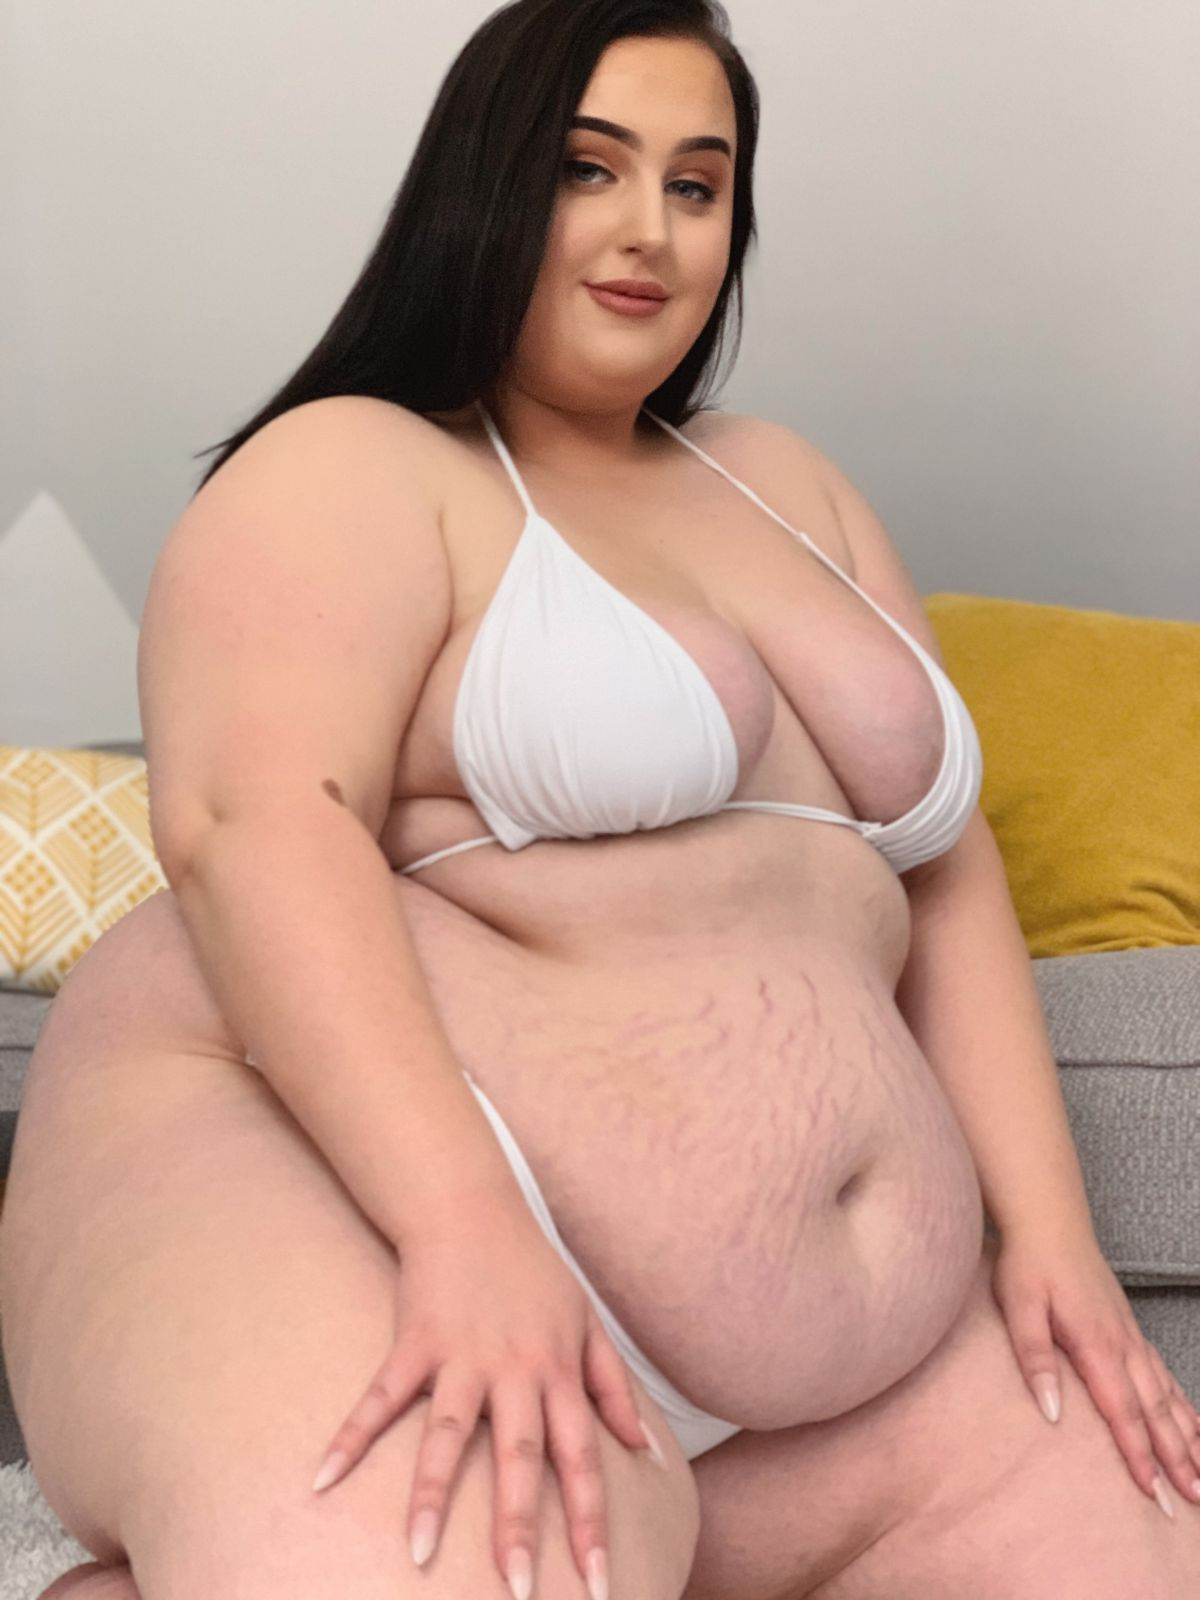 Free nudes of KittyPiggy onlyfans leaked